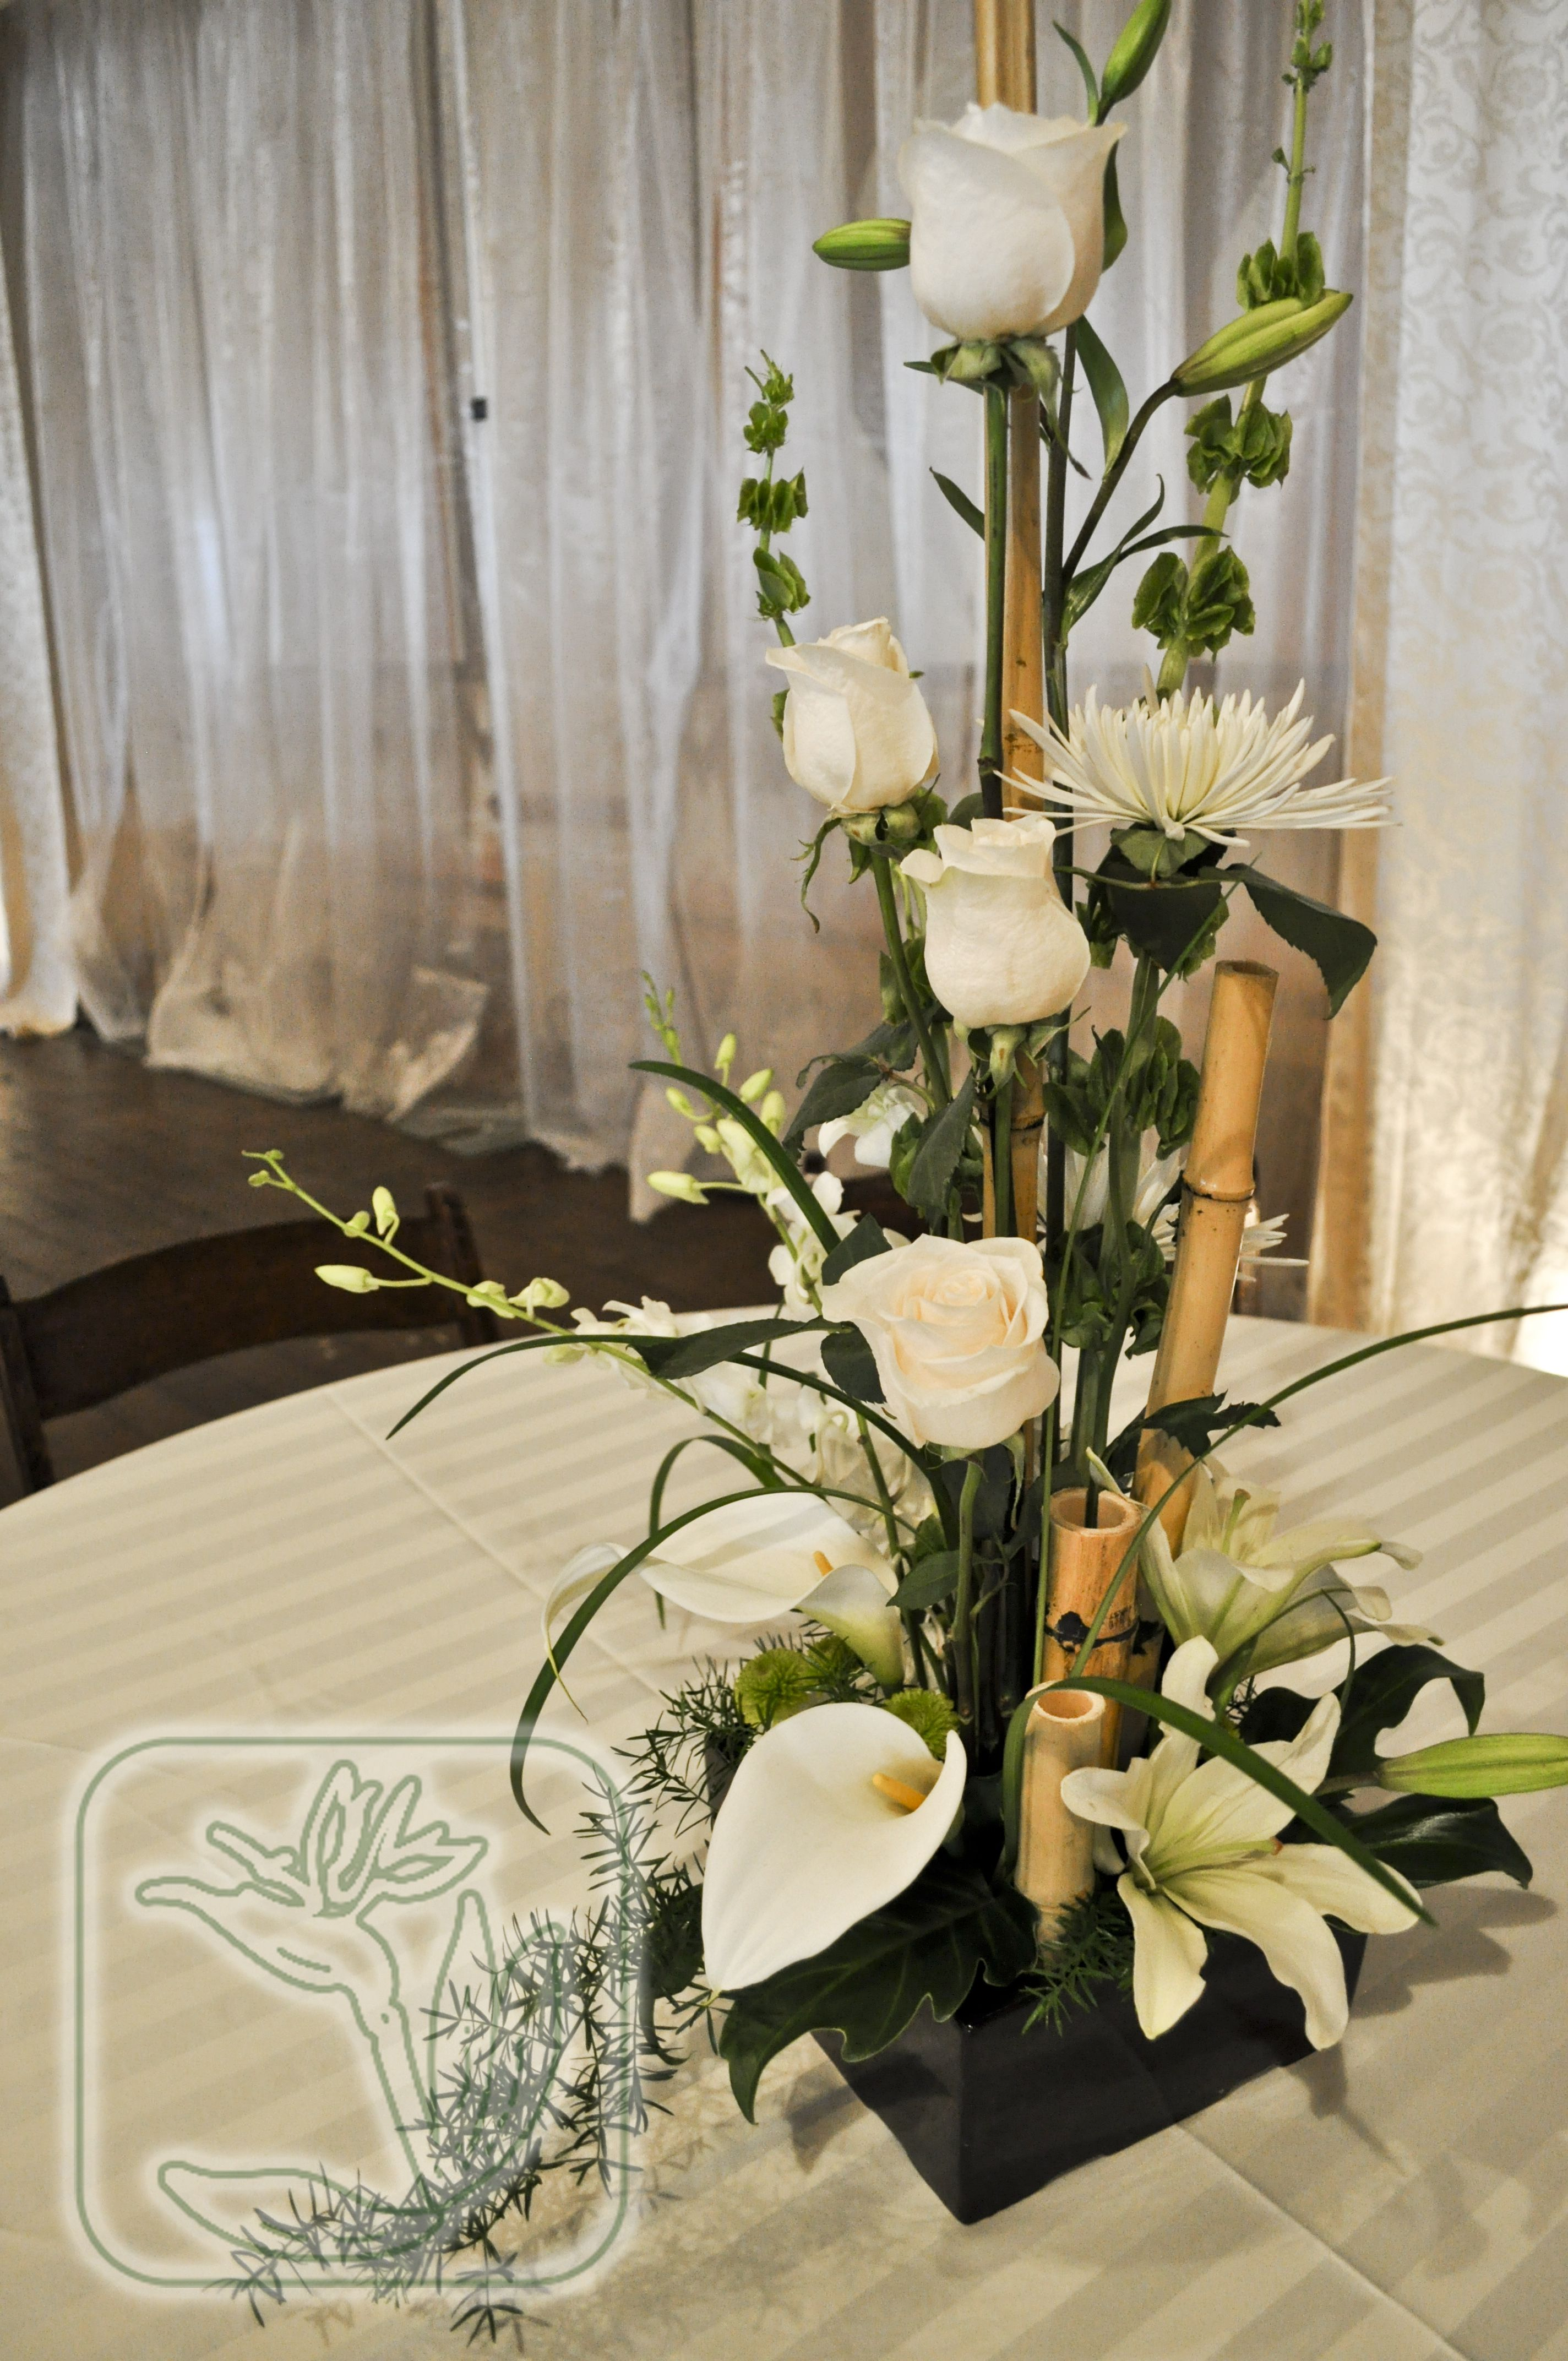 Utah Weddingevent Dinner Table Centerpiece White And Green Flowers